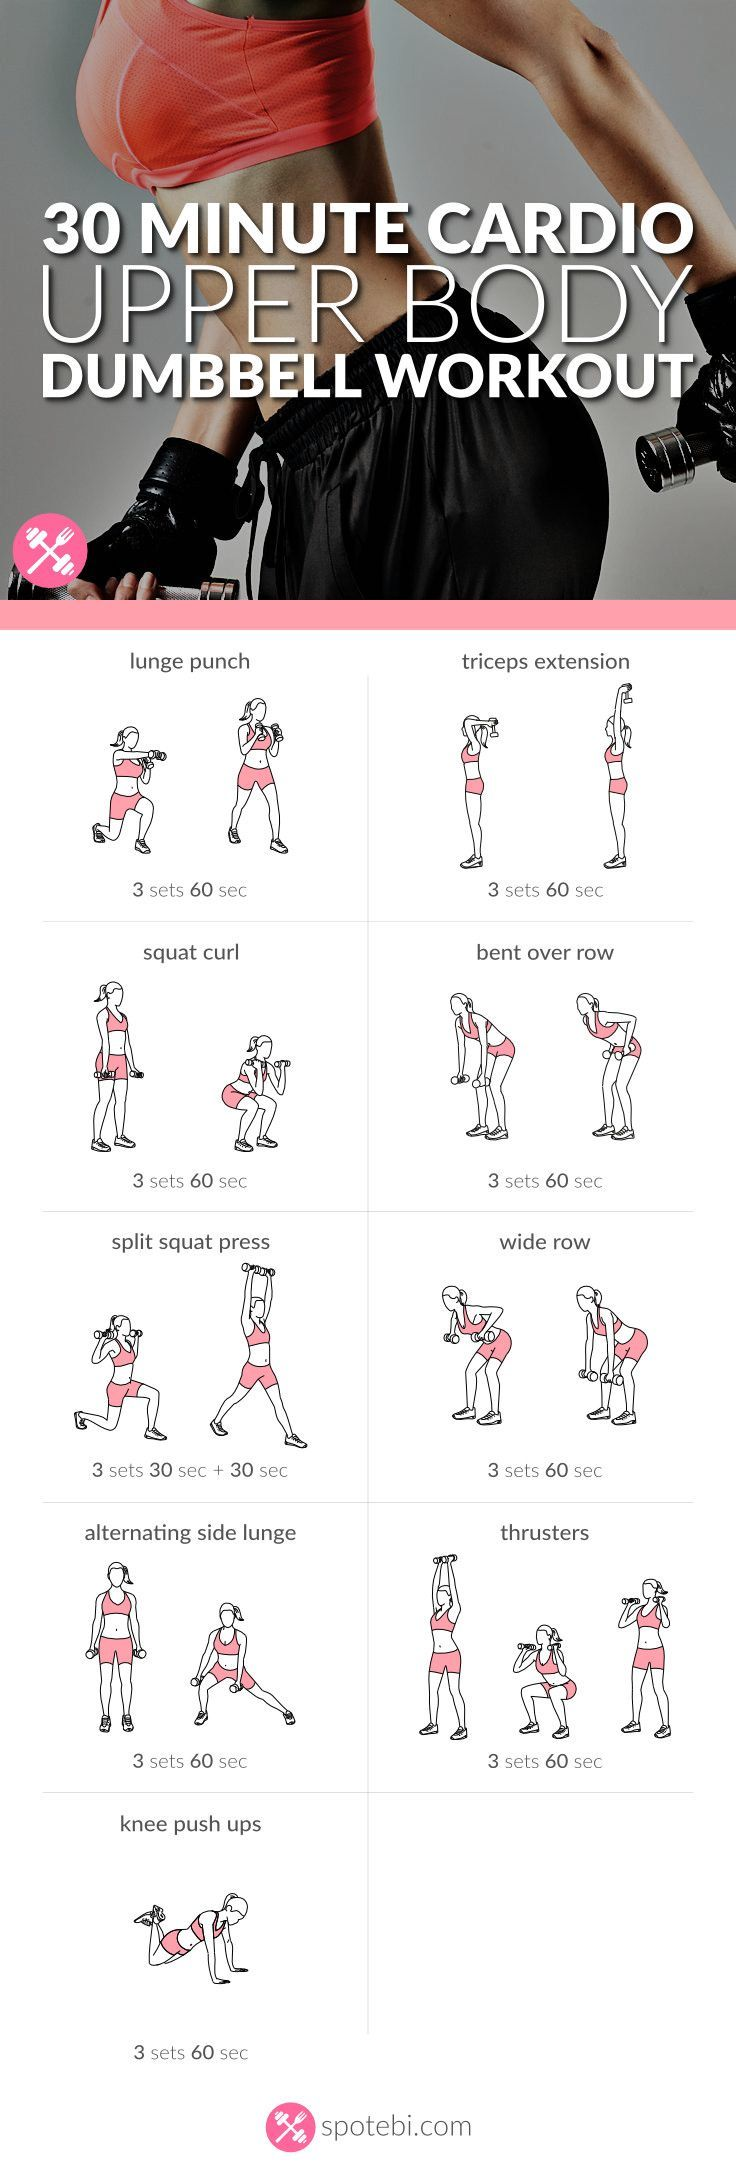 Quickly transform your upper body with this 30 minute cardio routine for women. A dumbbell workout to tone and tighten your arms, chest, back and shoulders. http://www.spotebi.com/workout-routines/30-minute-cardio-upper-body-dumbbell-workout/